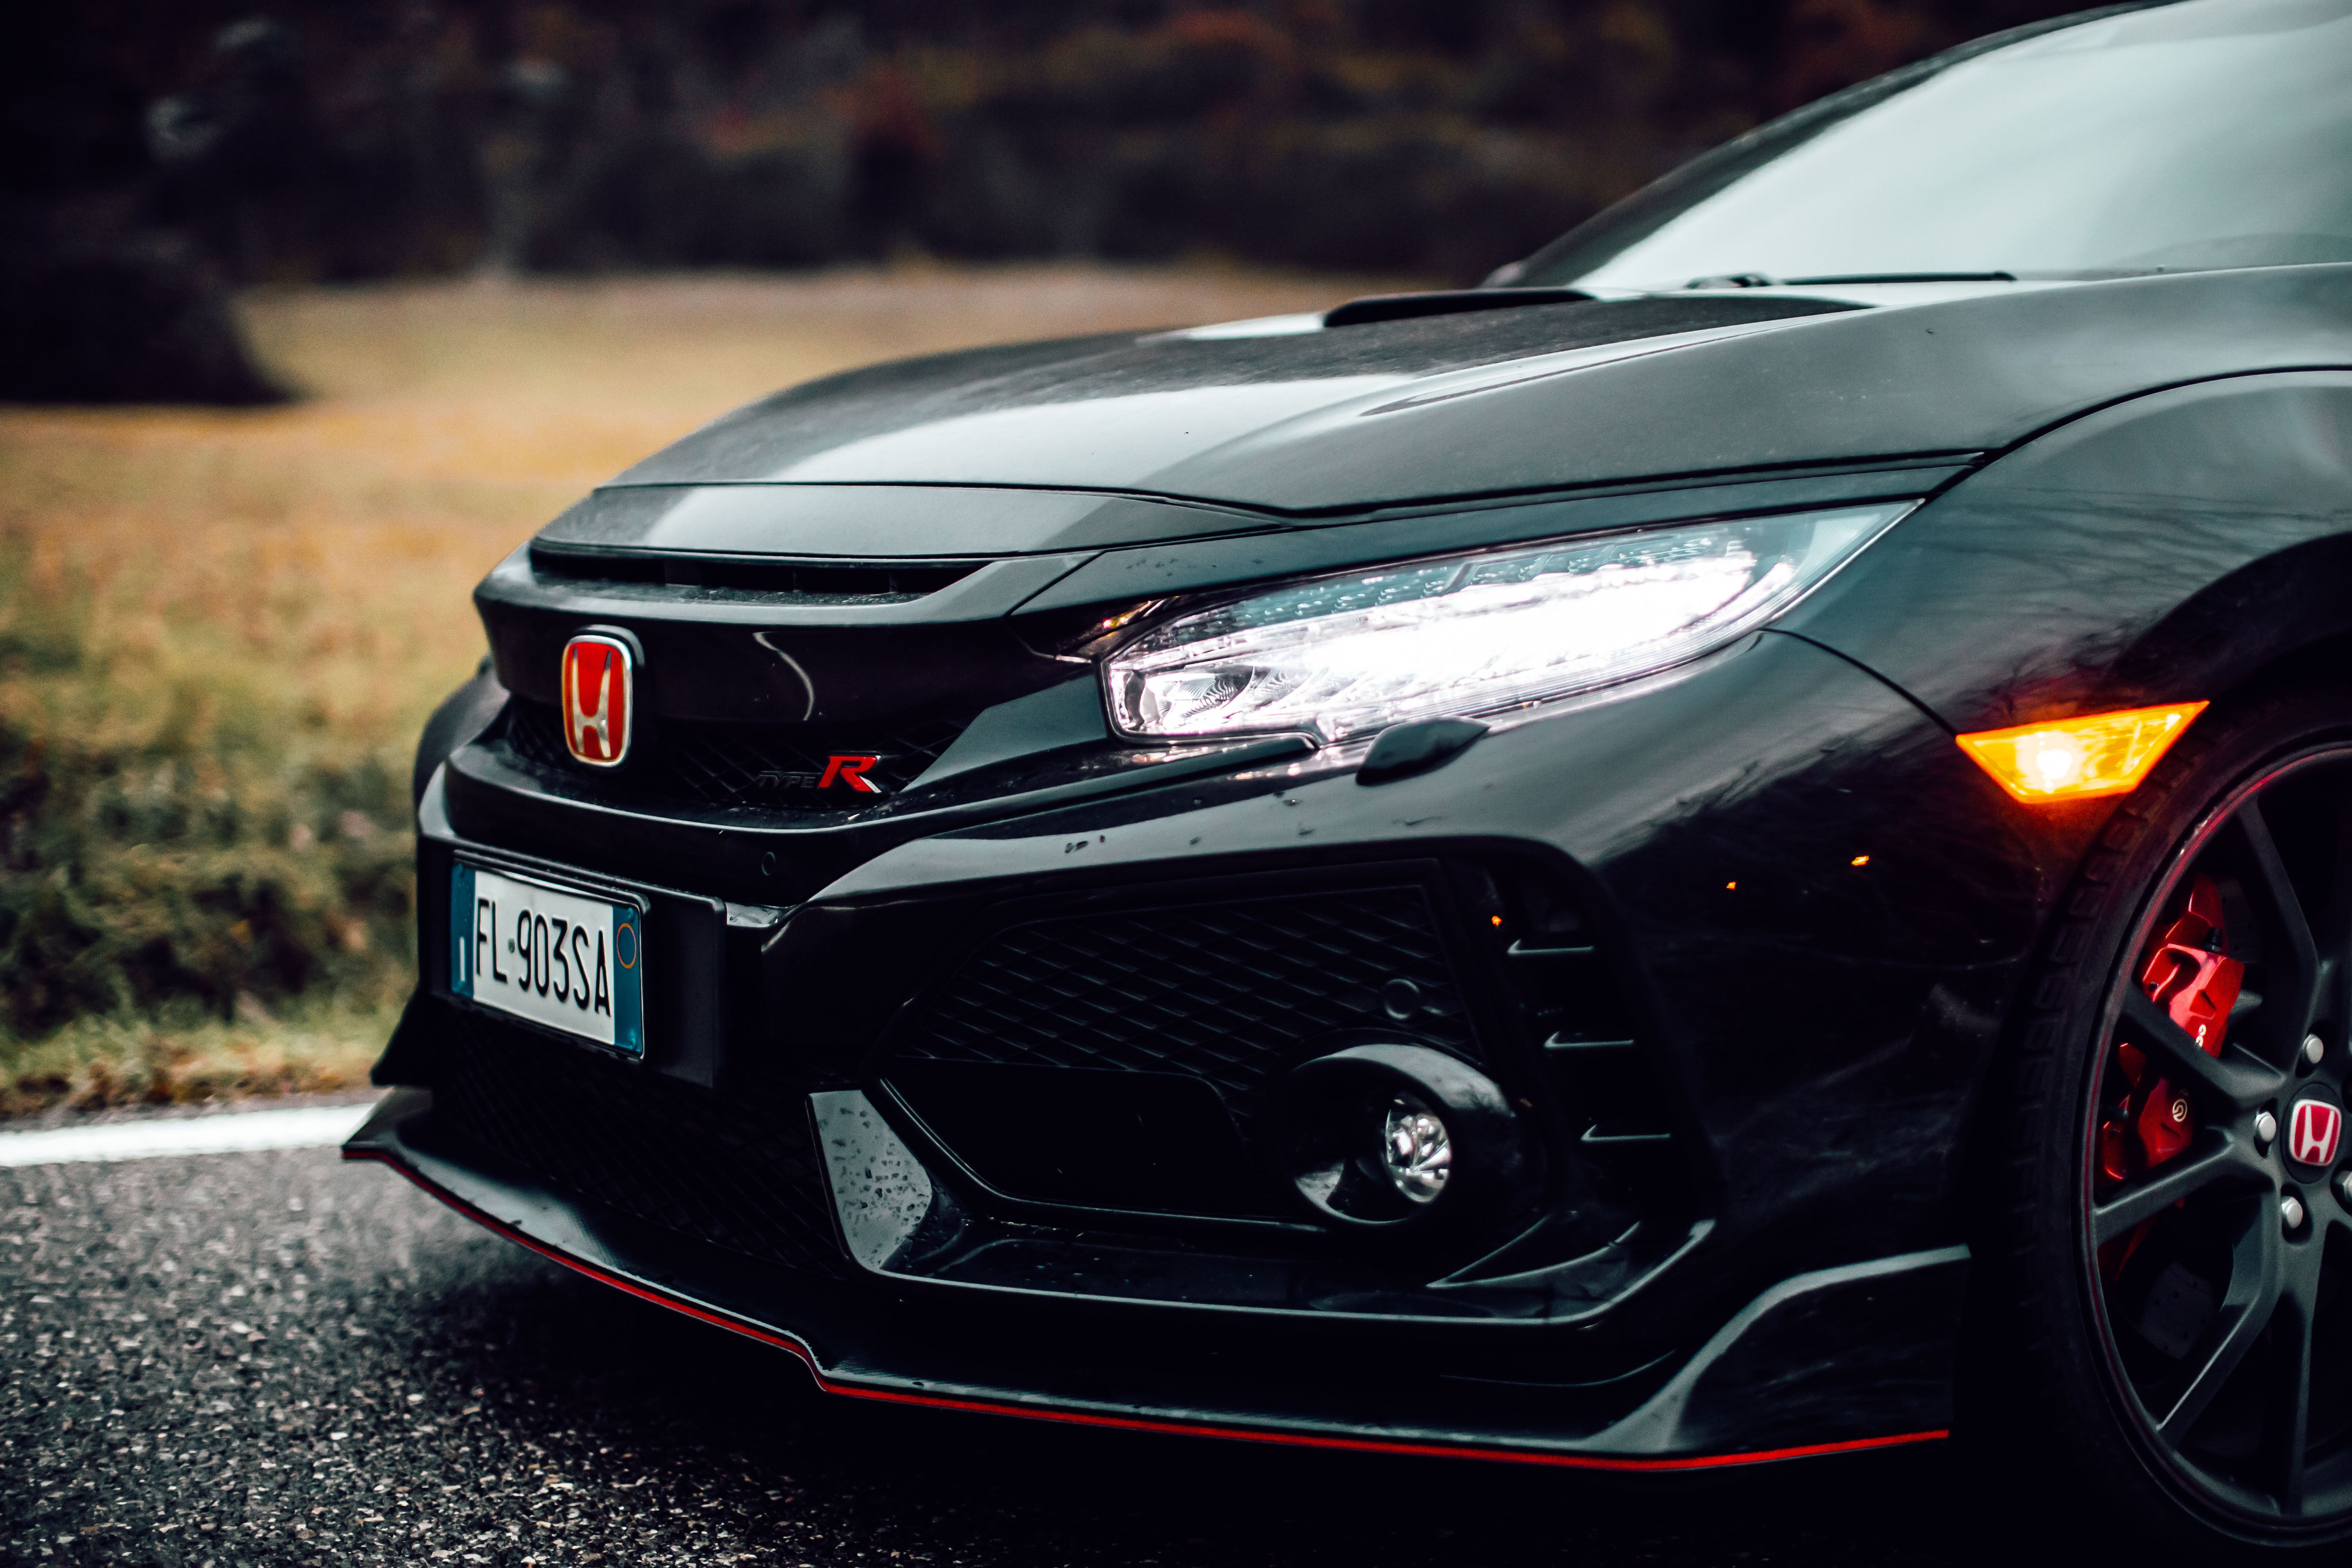 Honda Civic Type R 2020 In 2020 Honda Civic Type R Honda Civic Honda